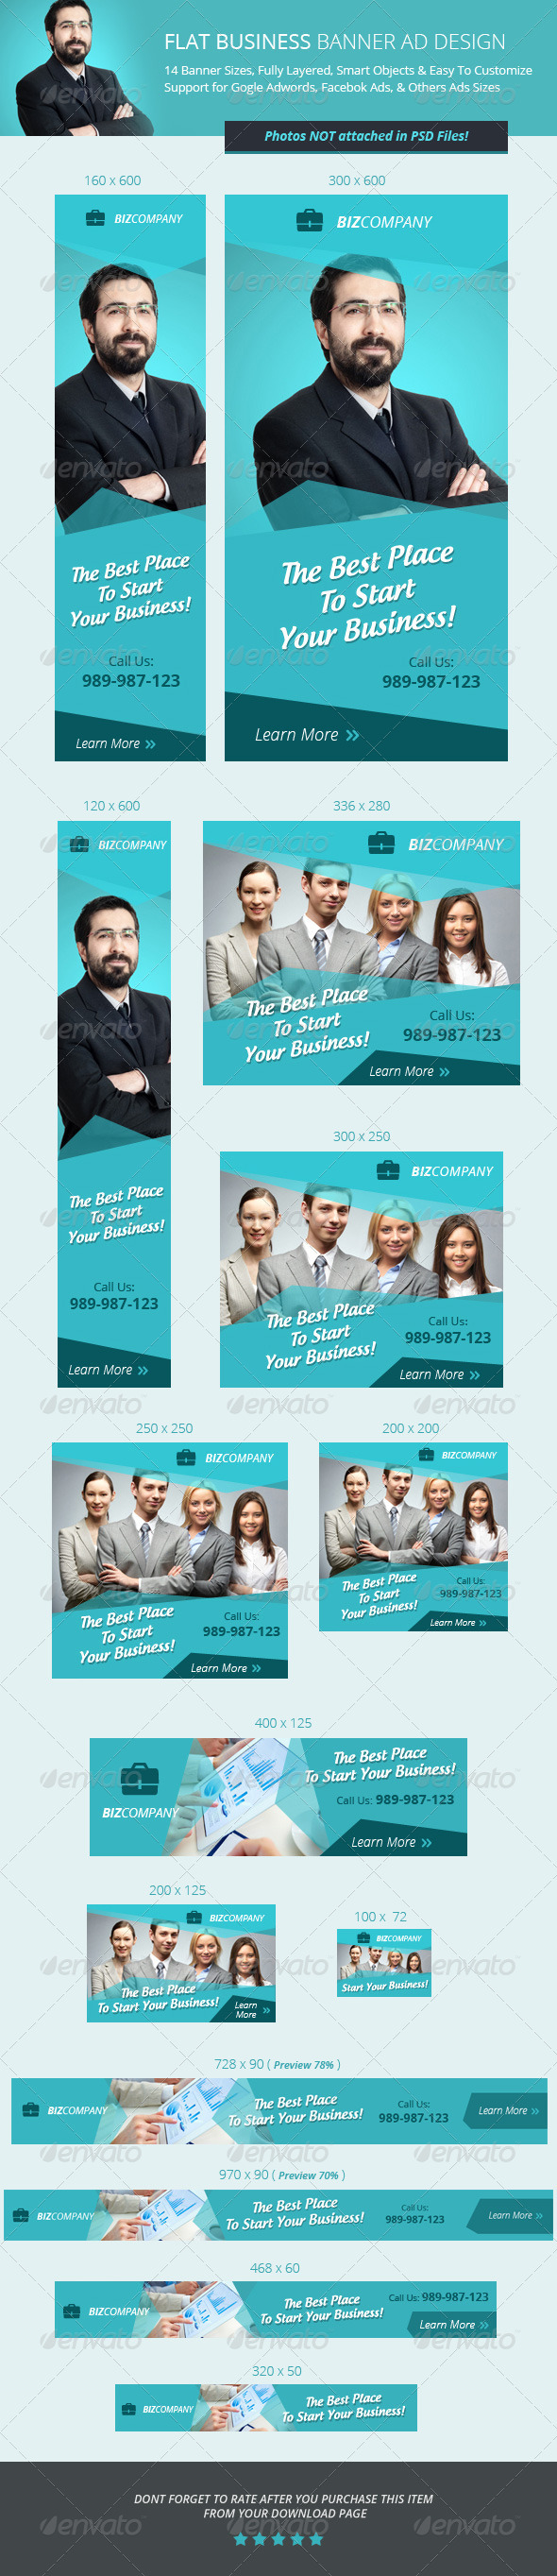 GraphicRiver Flat Business Banner ad Design 6964182